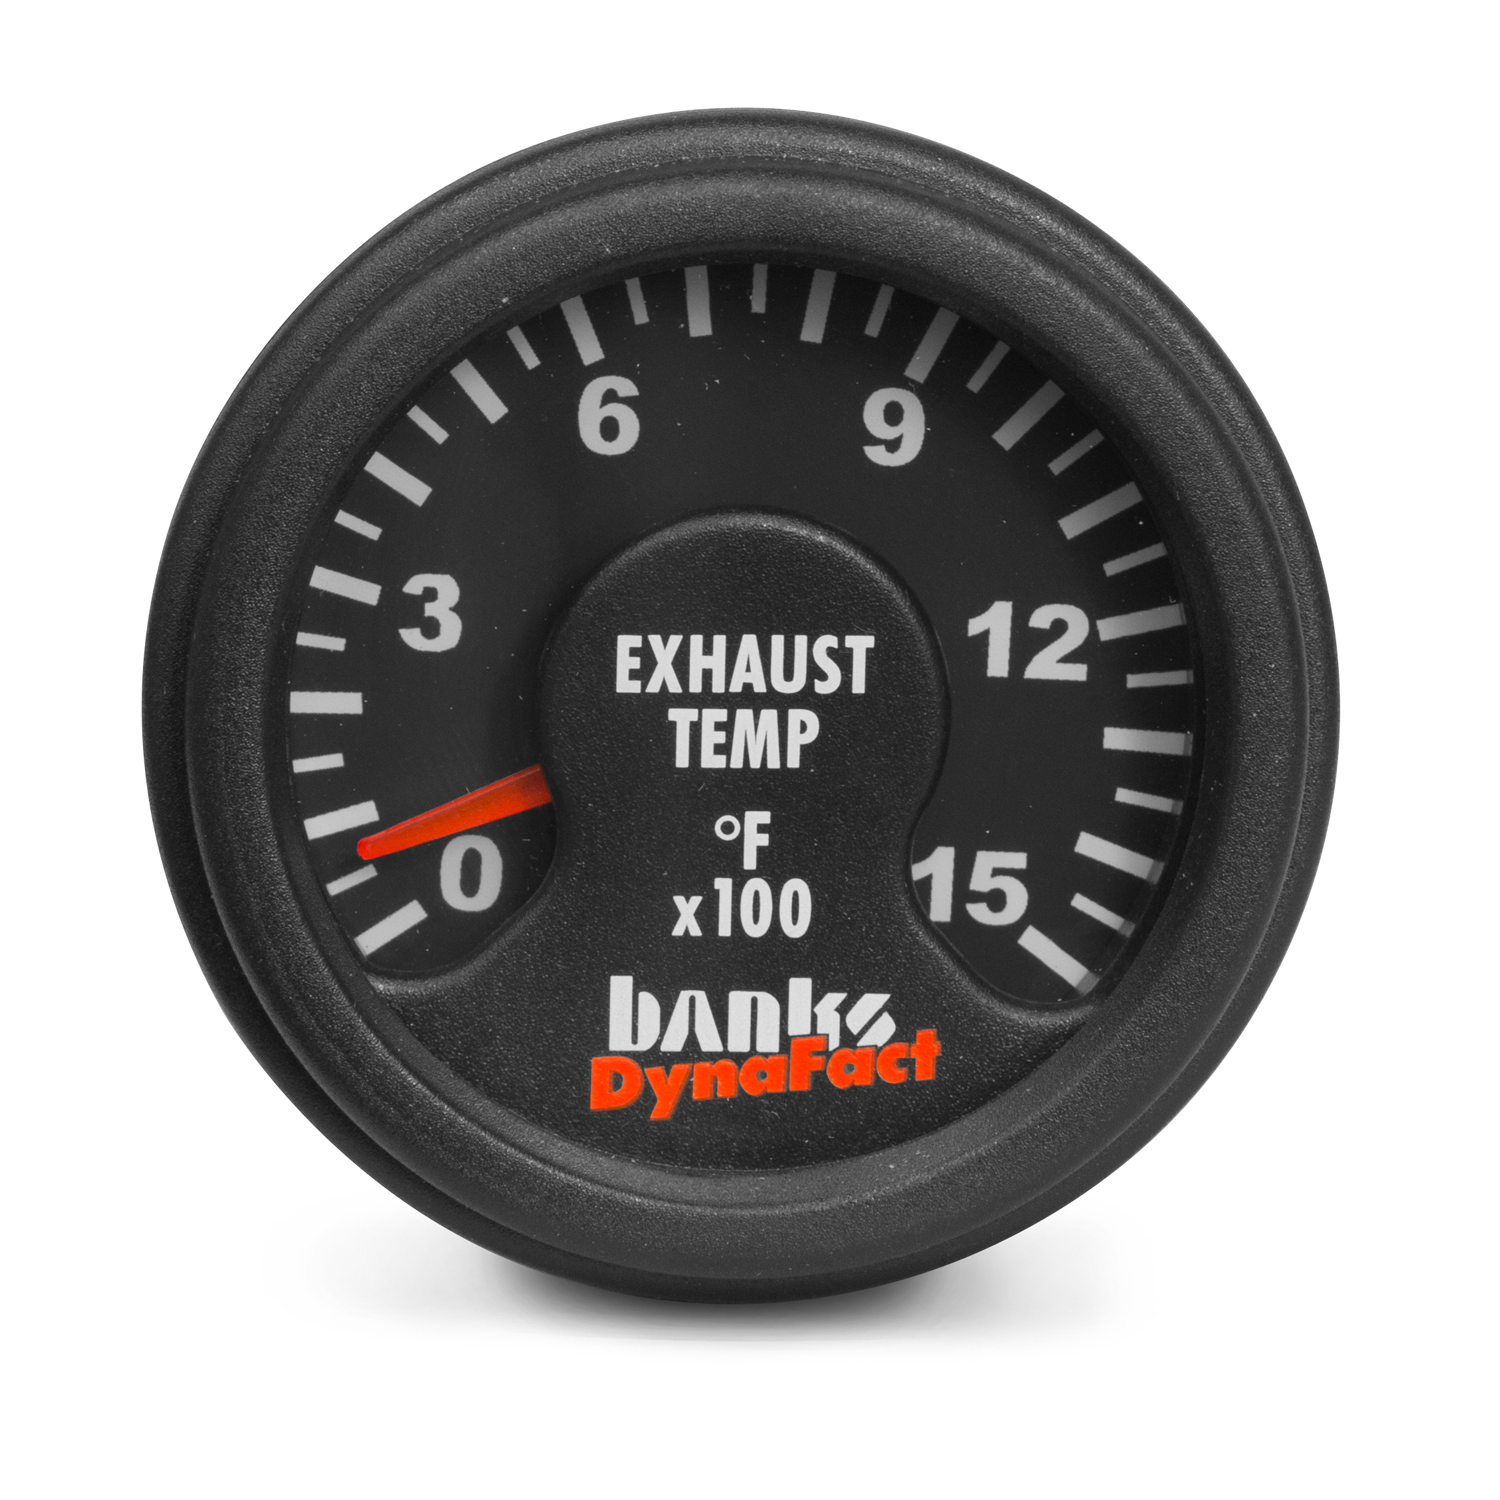 Banks 64002 - Banks DynaFact Gauges